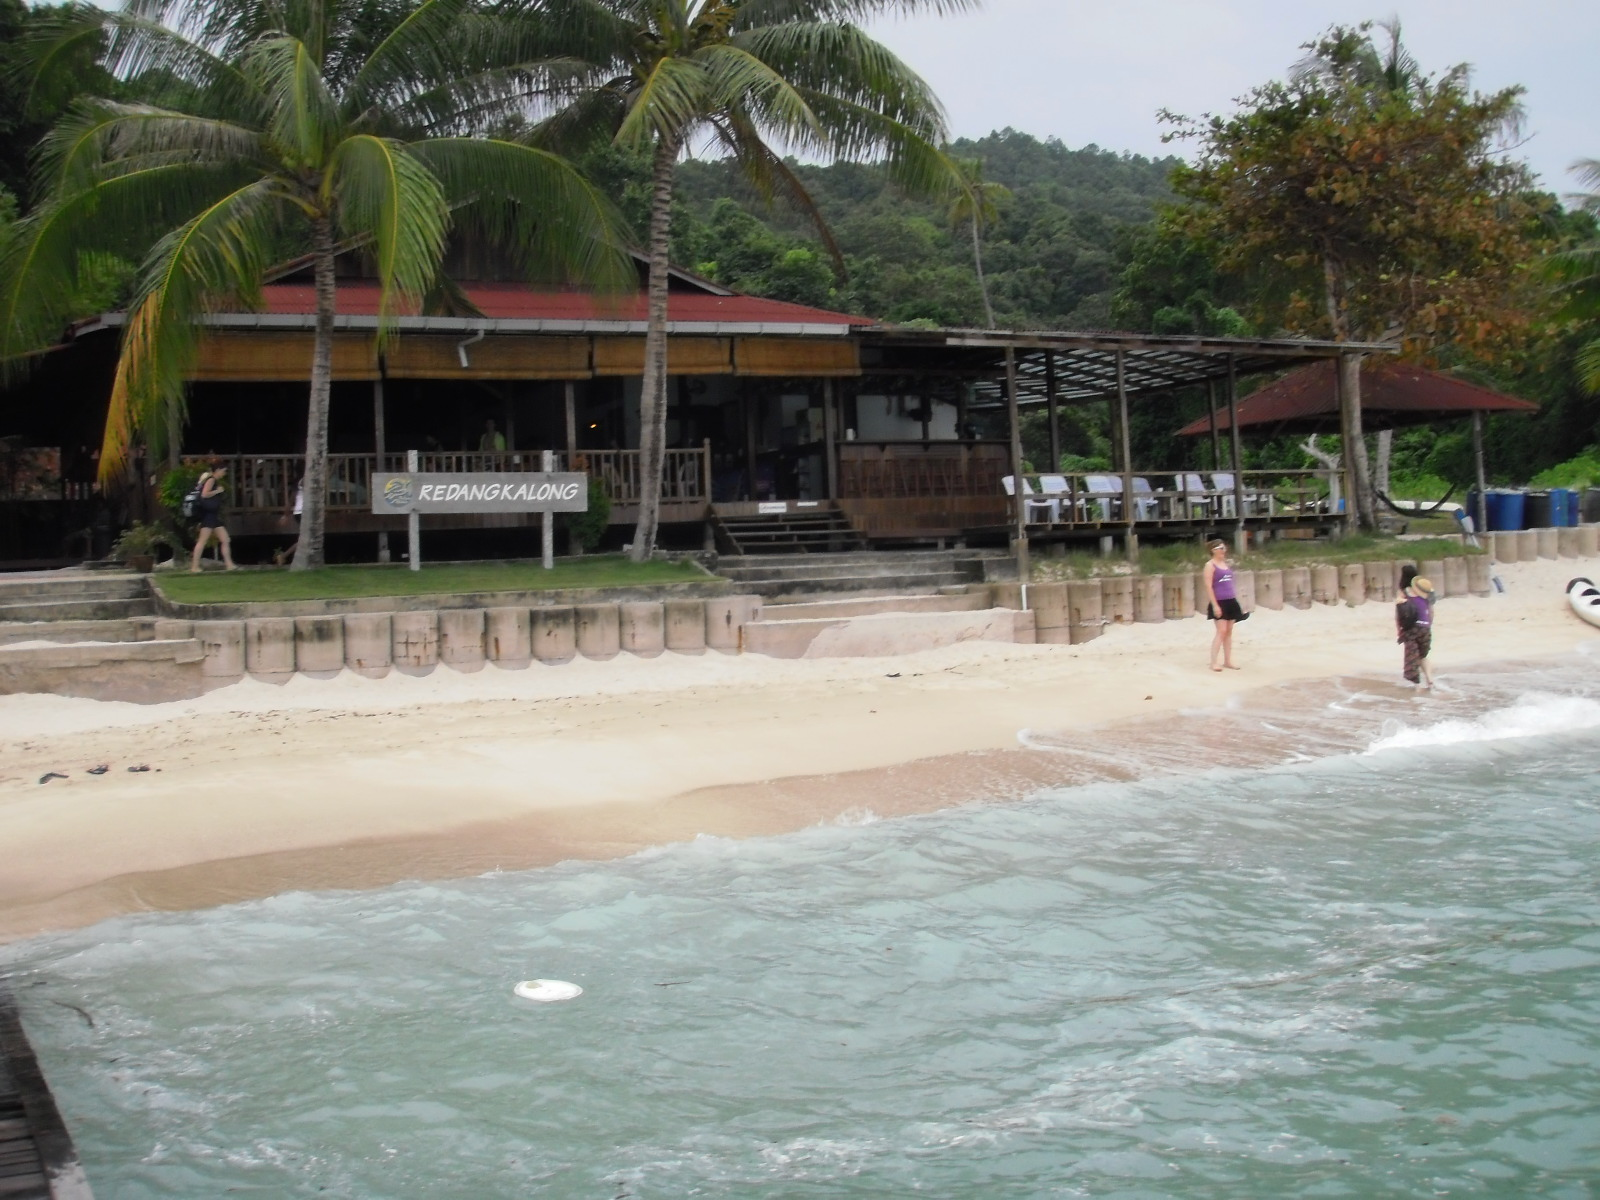 Redangkalong Resort